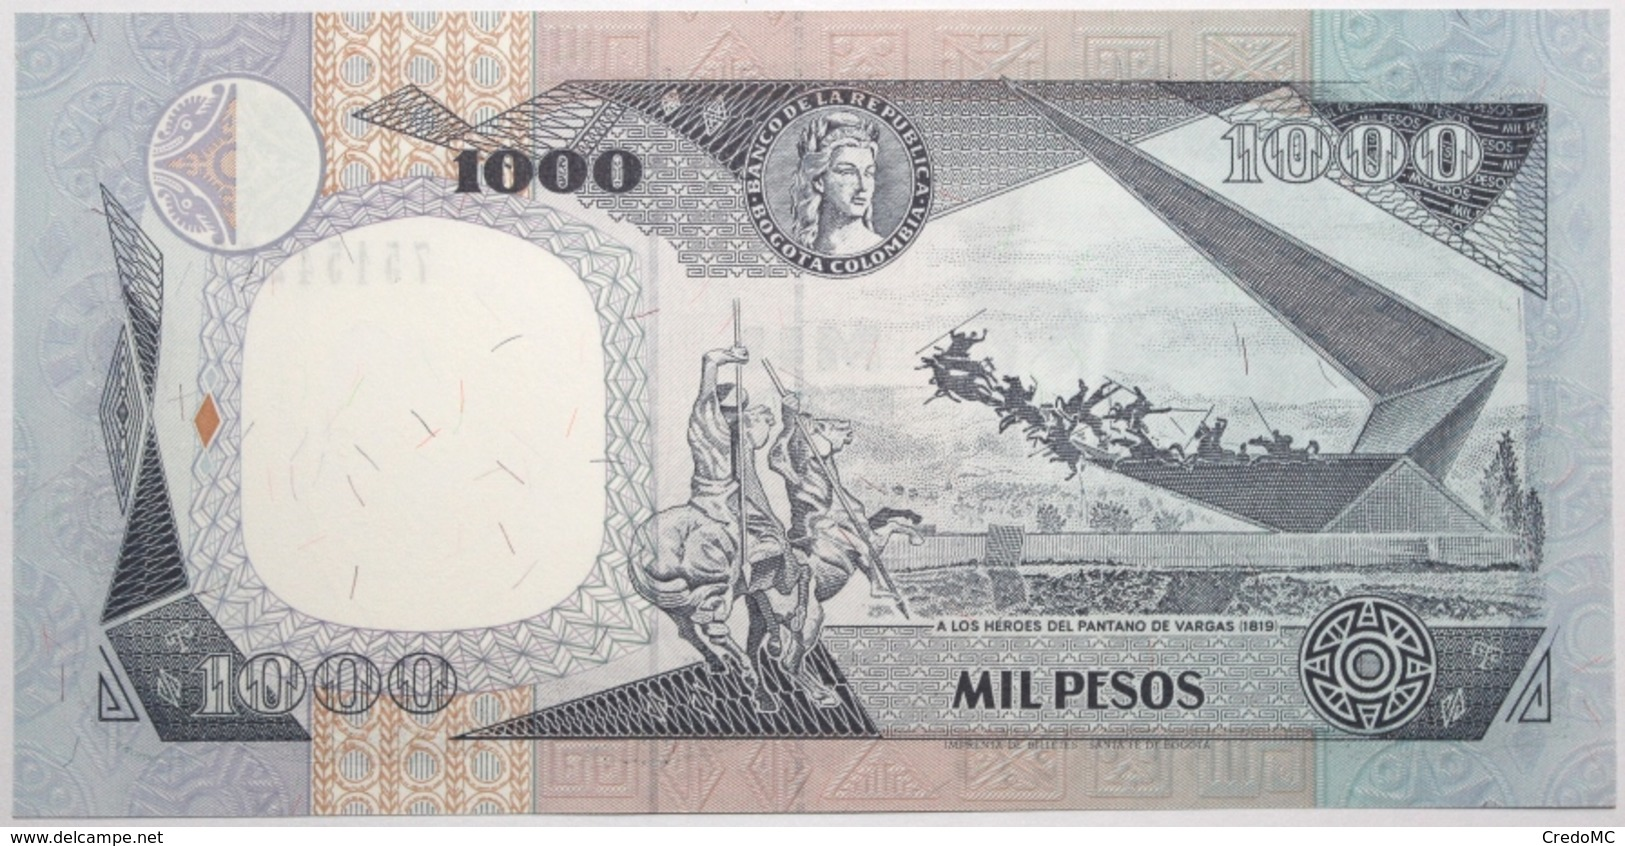 Colombie - 1000 Pesos Oro - 1994 - PICK 438a.2 - NEUF - Colombia